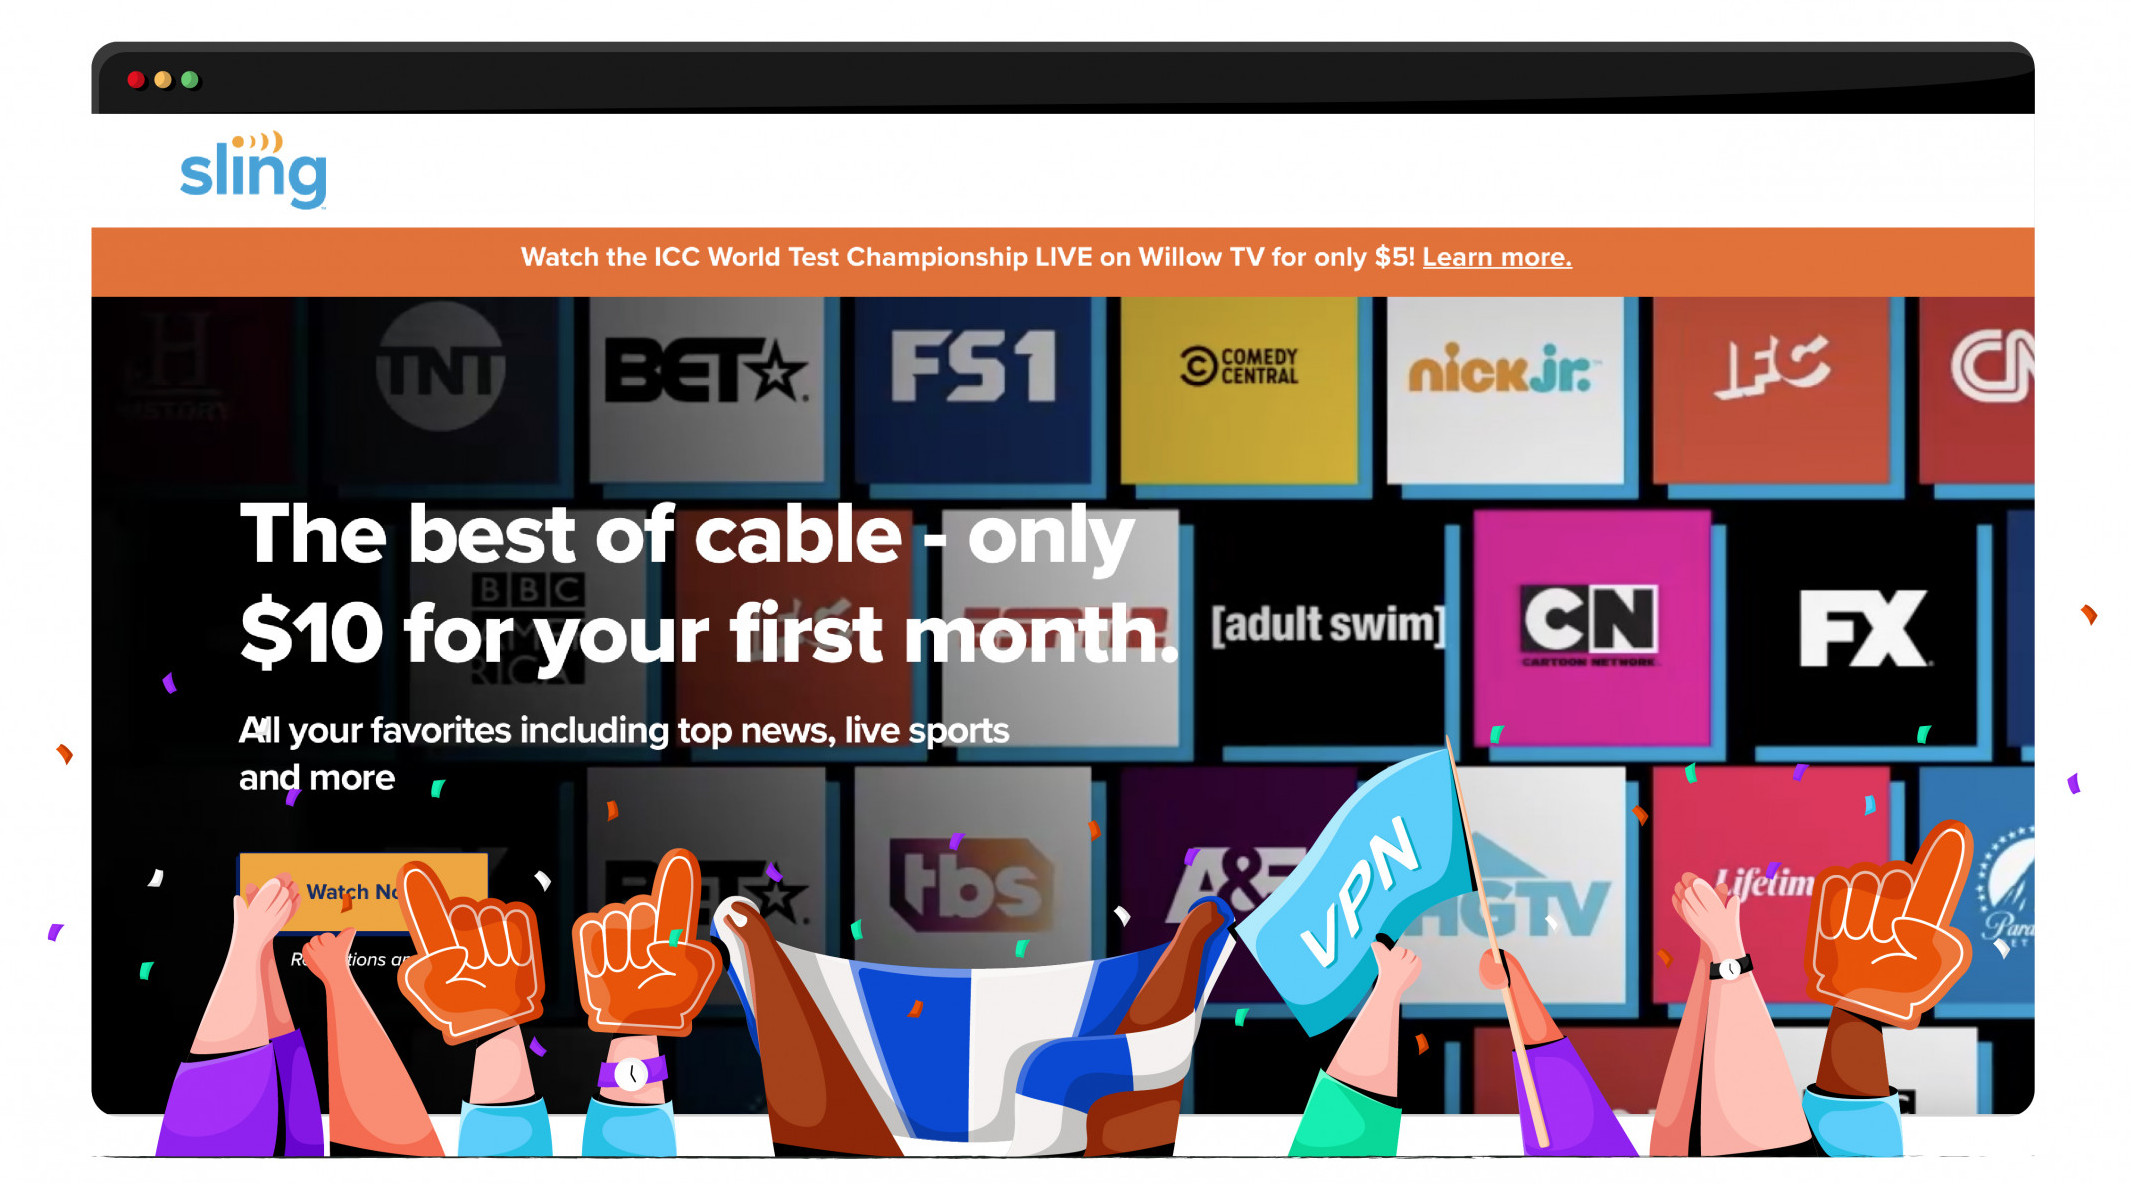 Watch the NBA and other sporting events through Sling TV